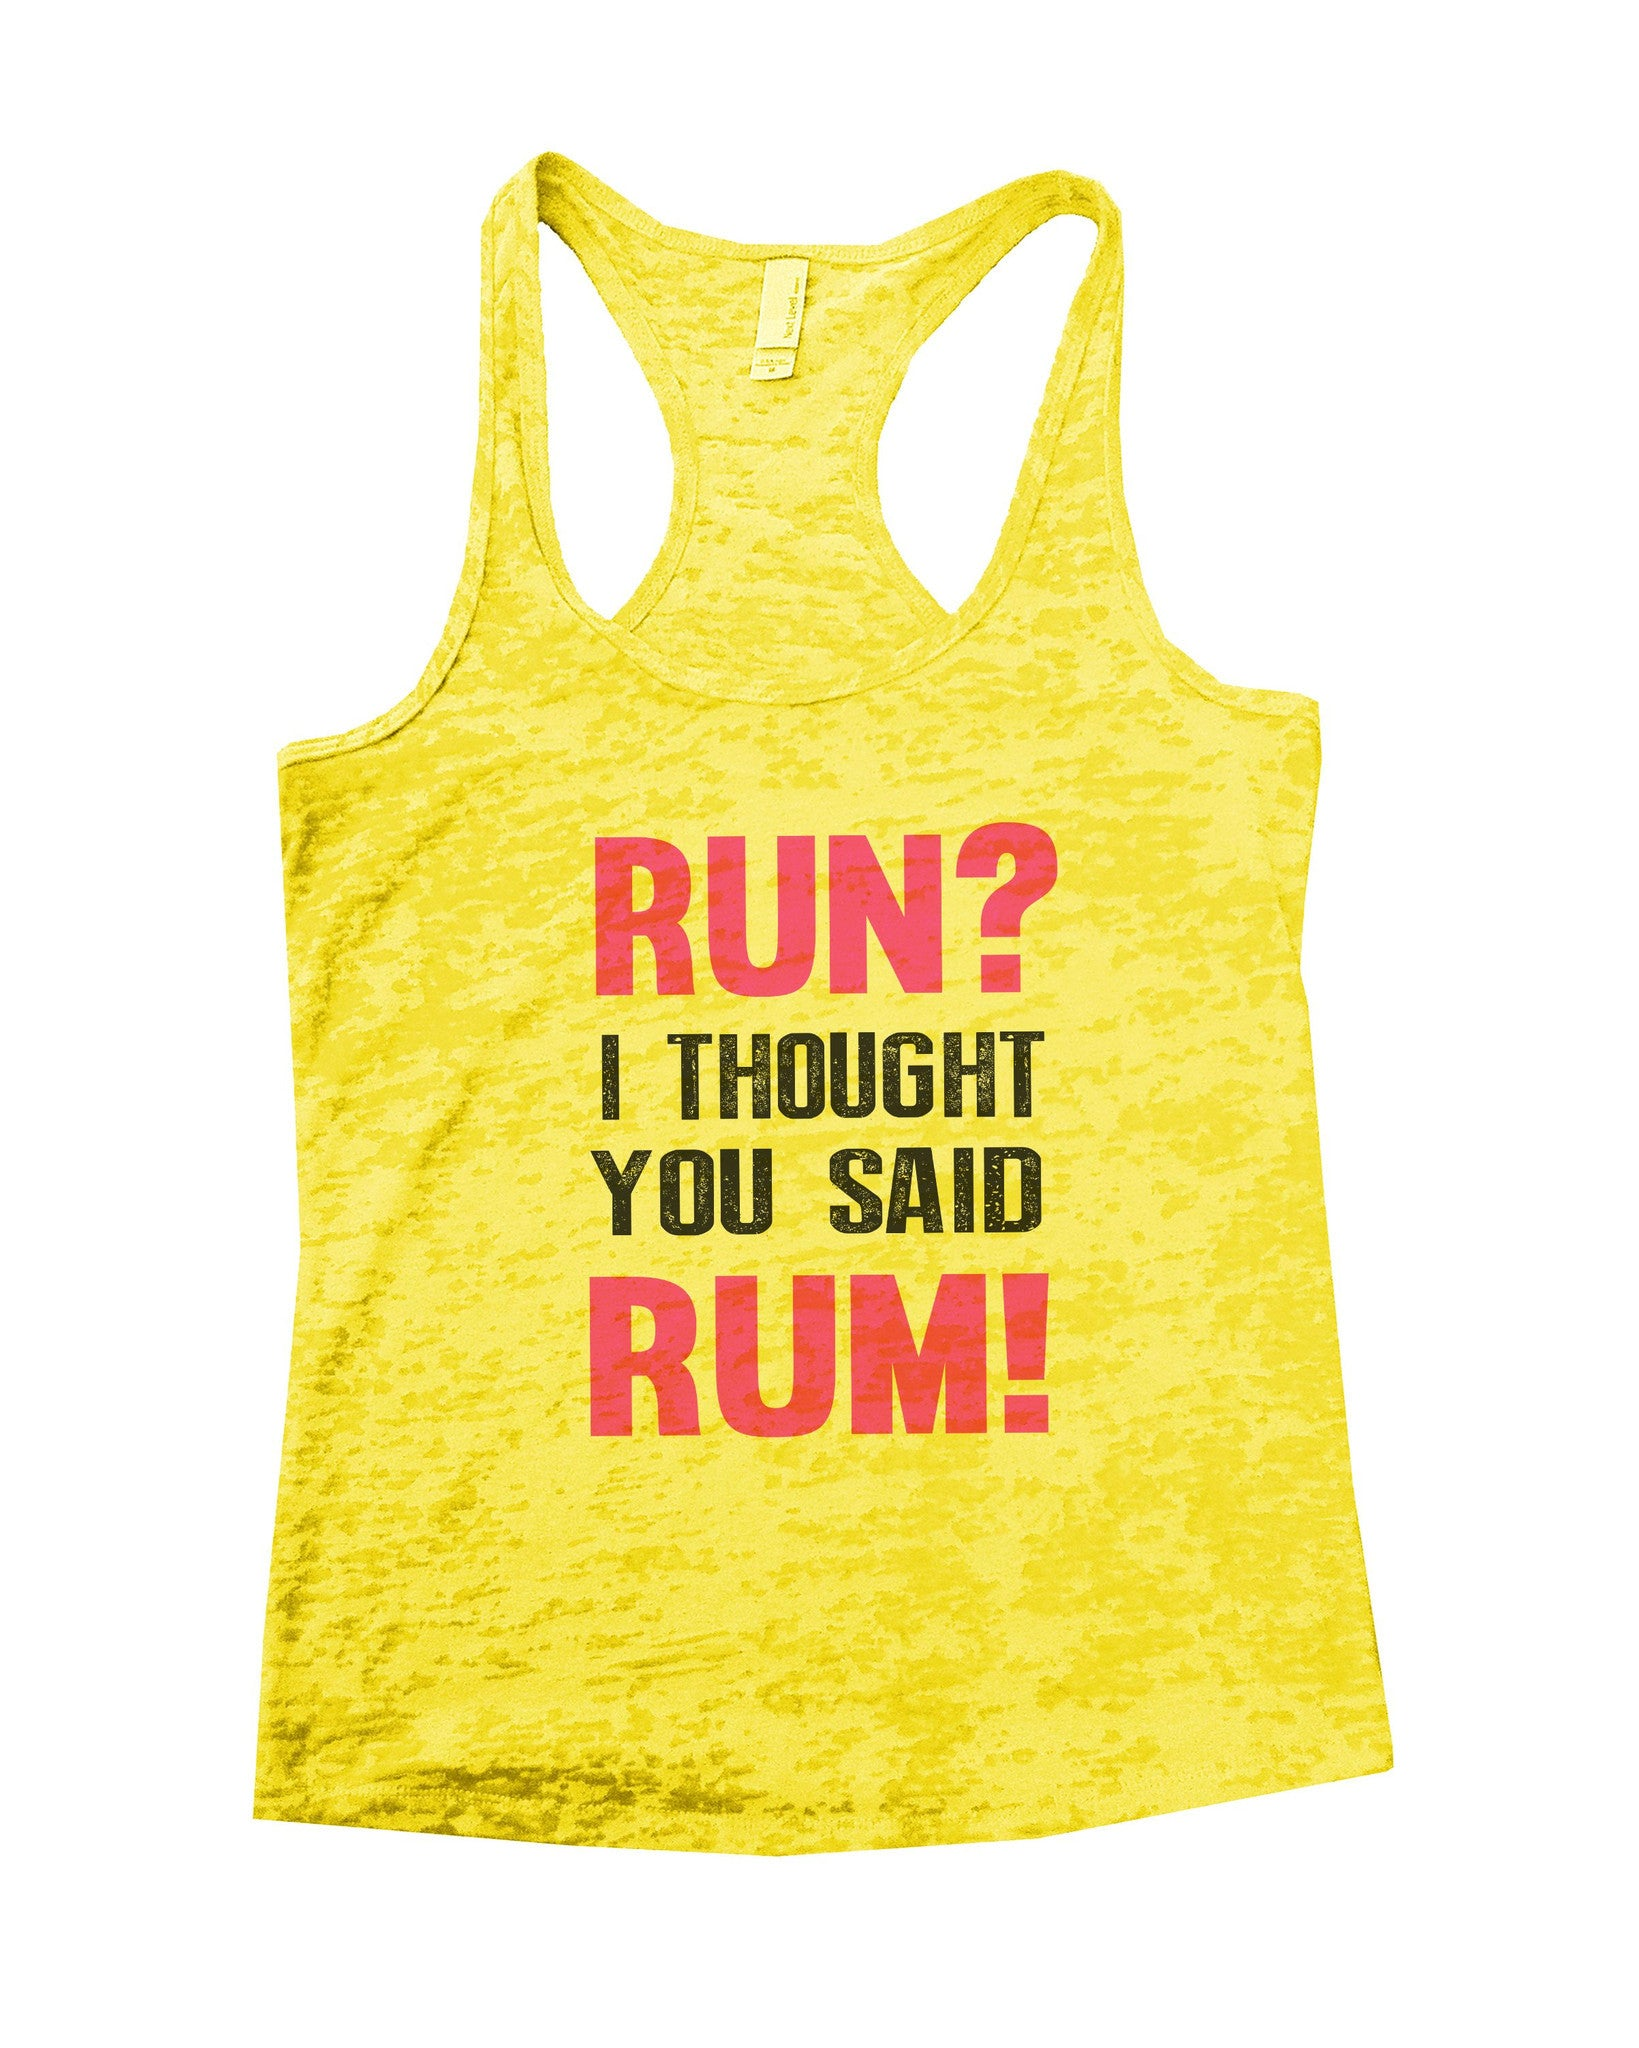 Run? I Thought You Said Rum! Burnout Tank Top By BurnoutTankTops.com - 958 - Funny Shirts Tank Tops Burnouts and Triblends  - 7